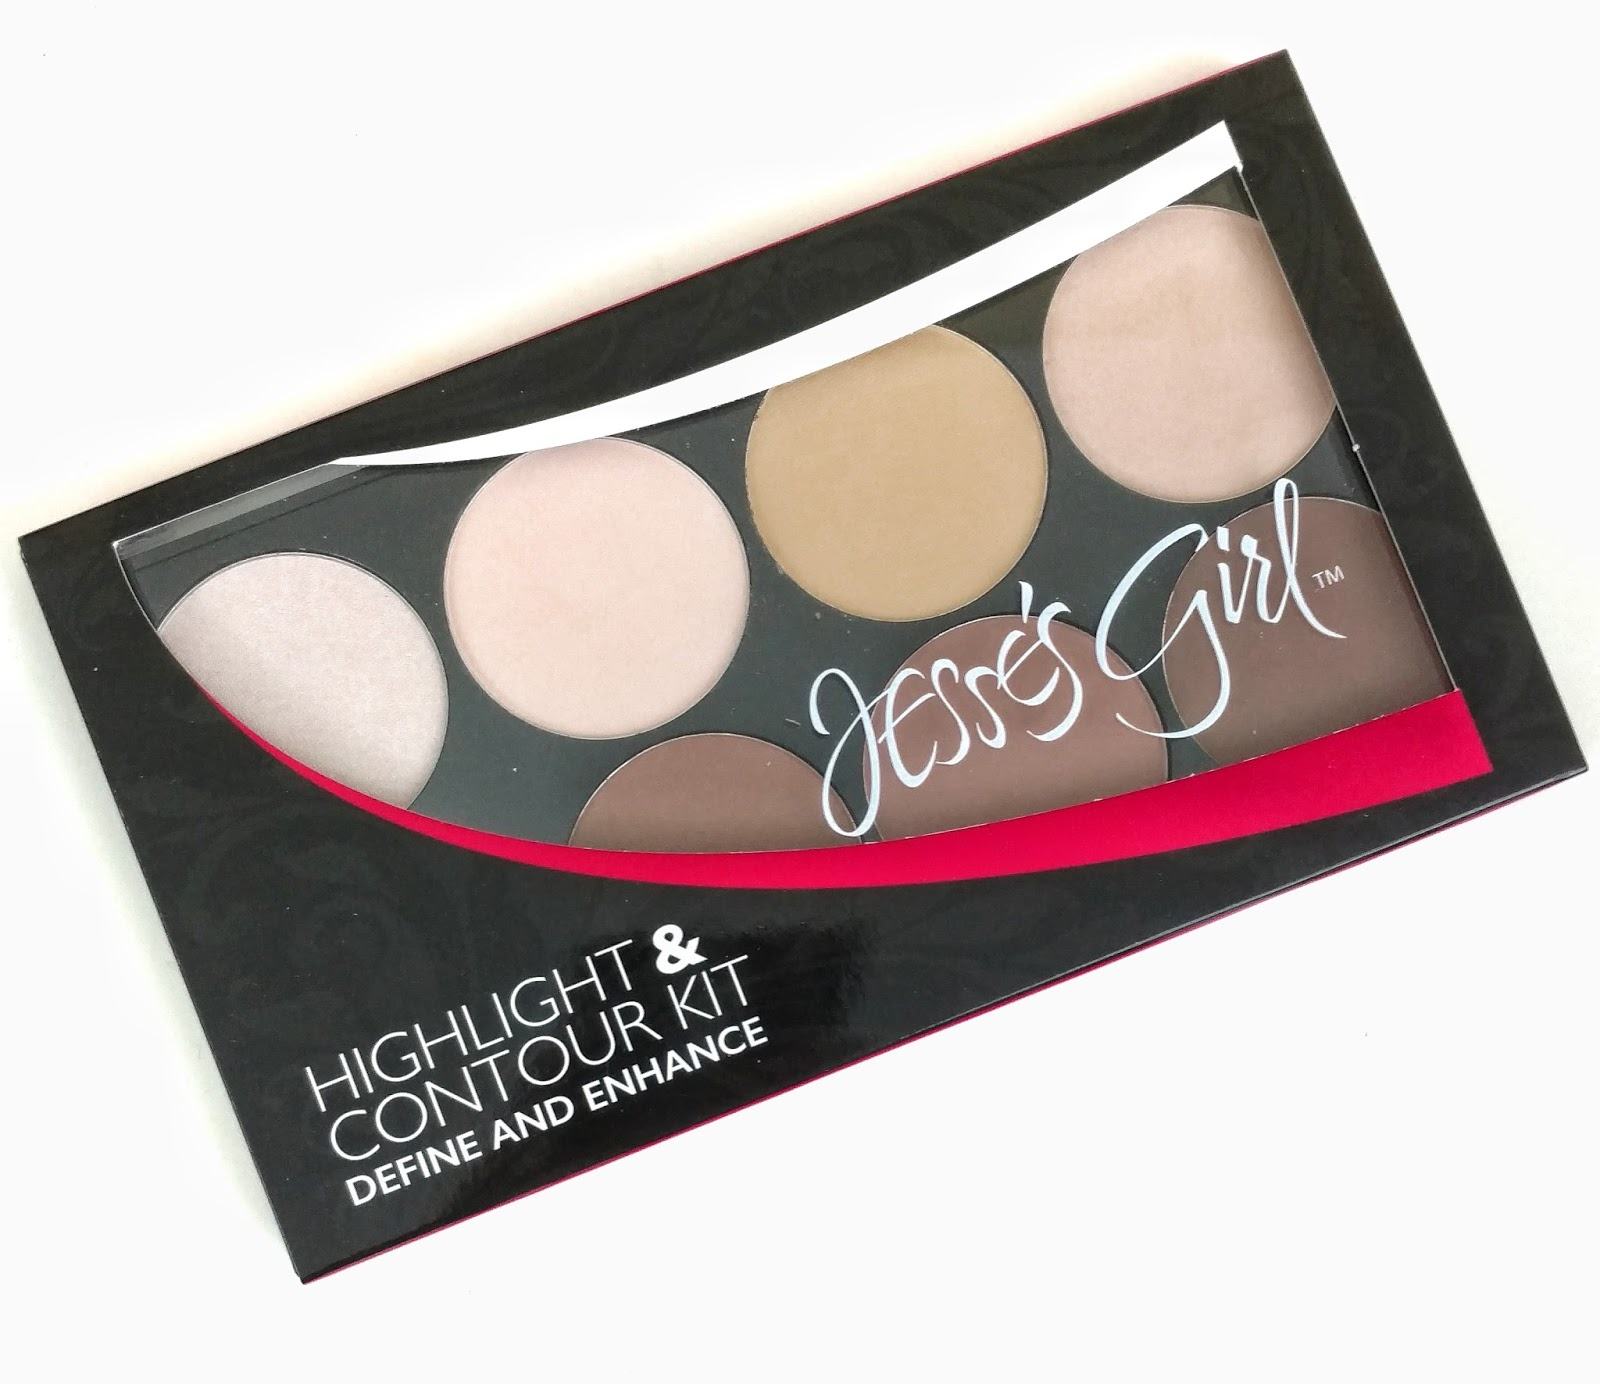 jesse's girl highlight & contour kit review